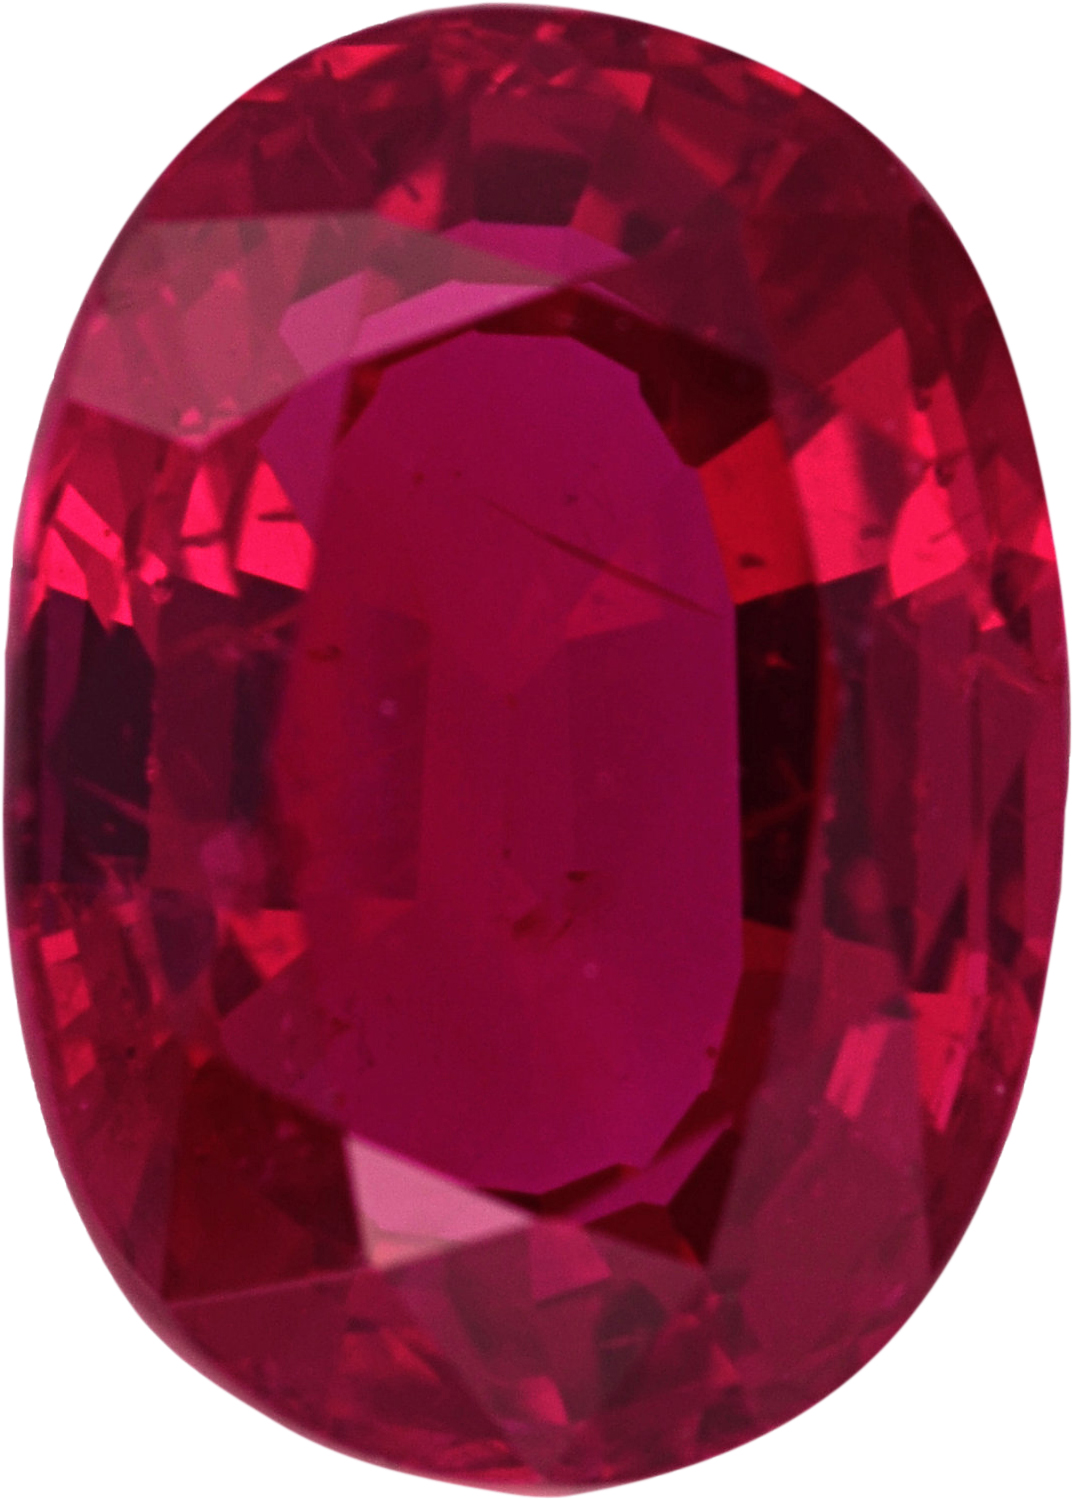 Attractive Ruby Loose Gem in Oval Cut, Vibrant Purple Red, 7.14 x 5.13  mm, 1.21 Carats